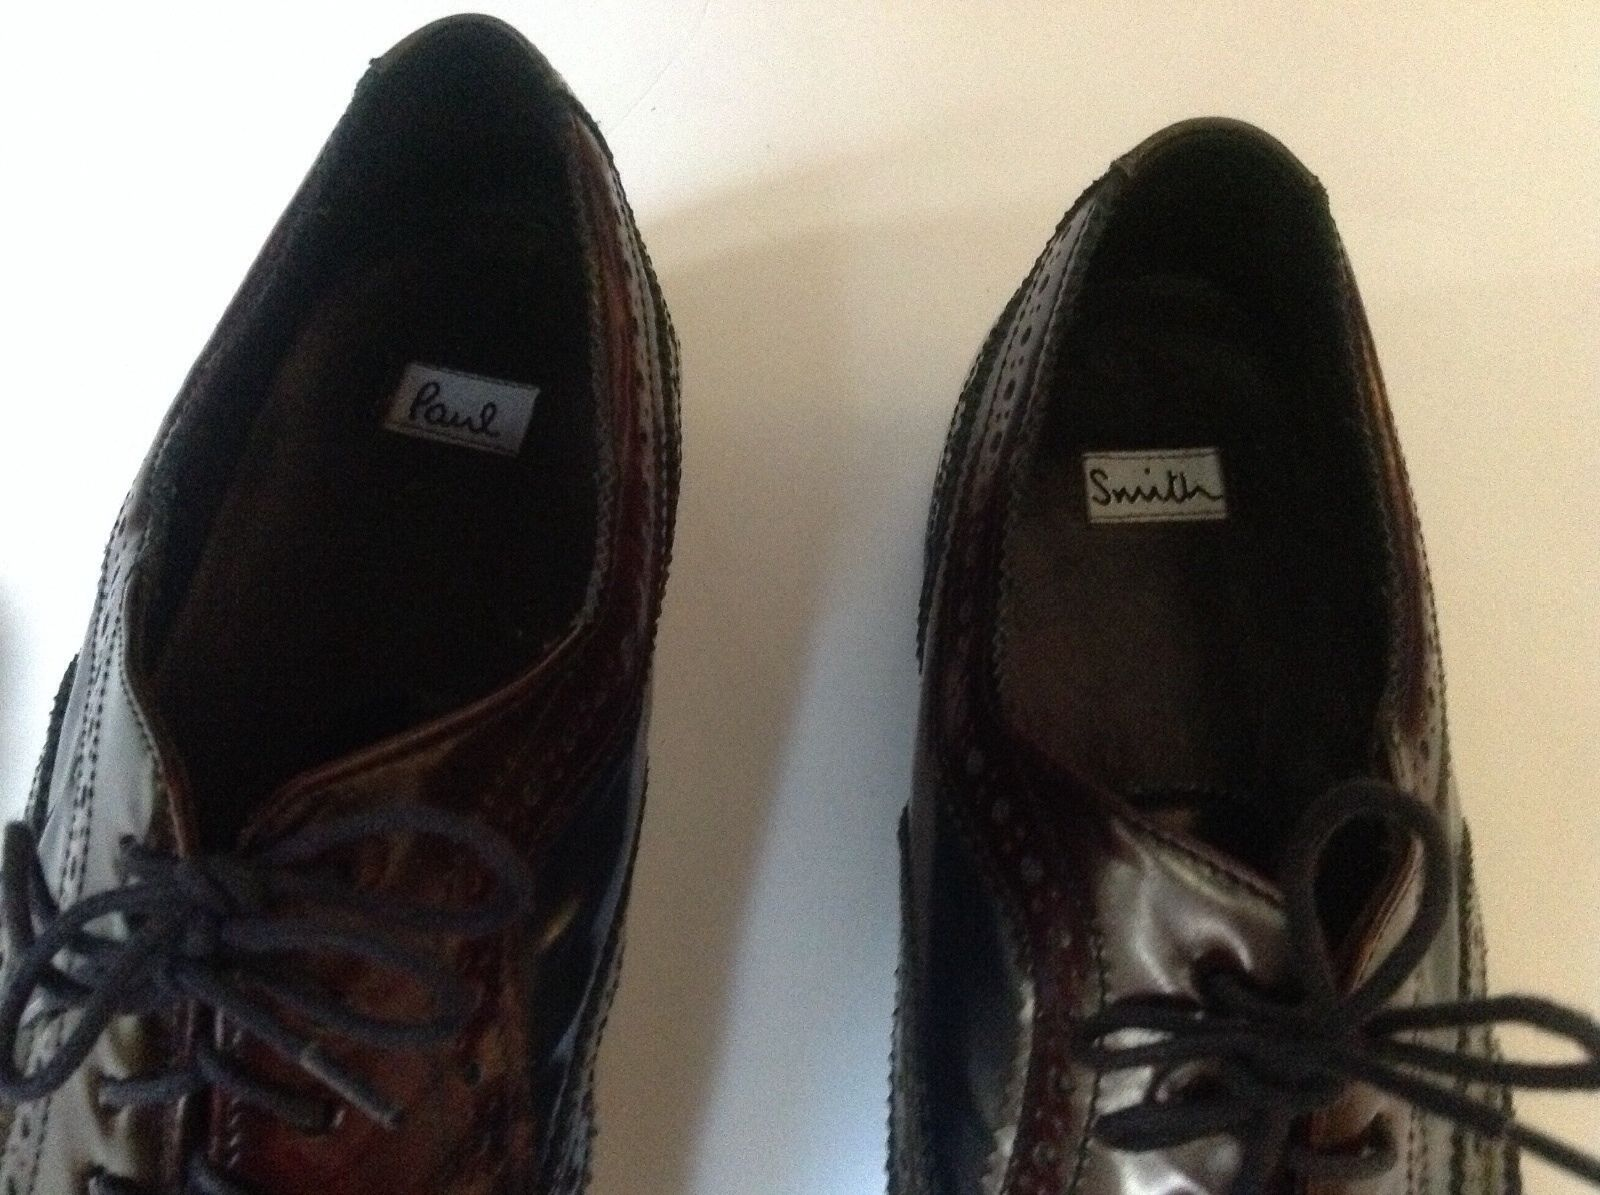 Paul Smith - TRI-COLOR PAIR of HANDCRAFTED HANDCRAFTED HANDCRAFTED WINGTIPS 10UK 44 EURO c2892c